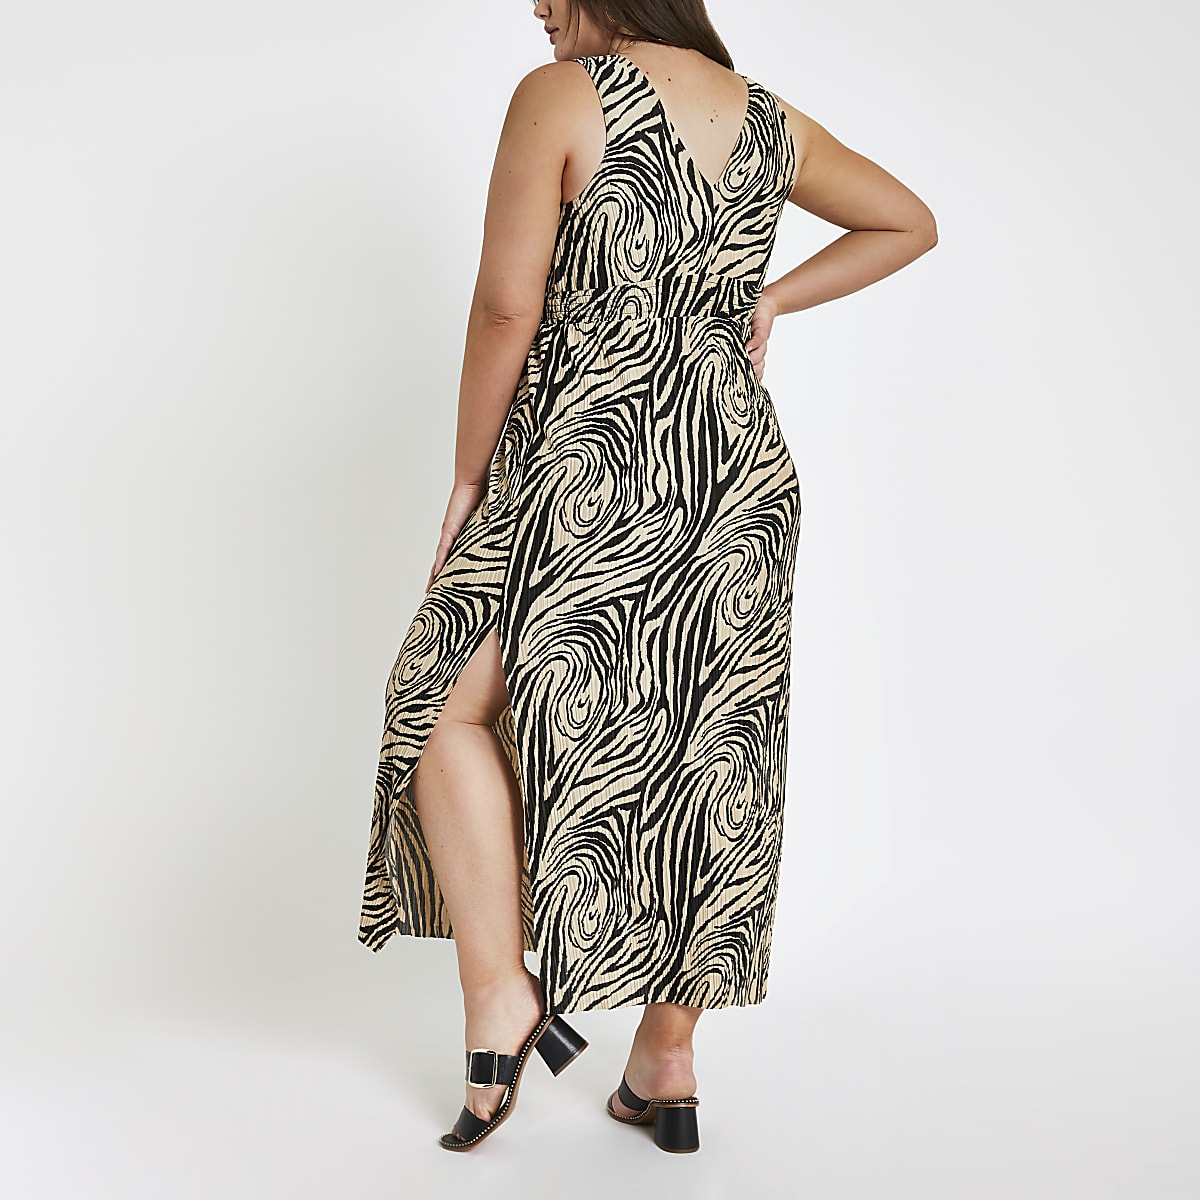 5917774c0b1 Plus black zebra print maxi dress - Maxi Dresses - Dresses - women